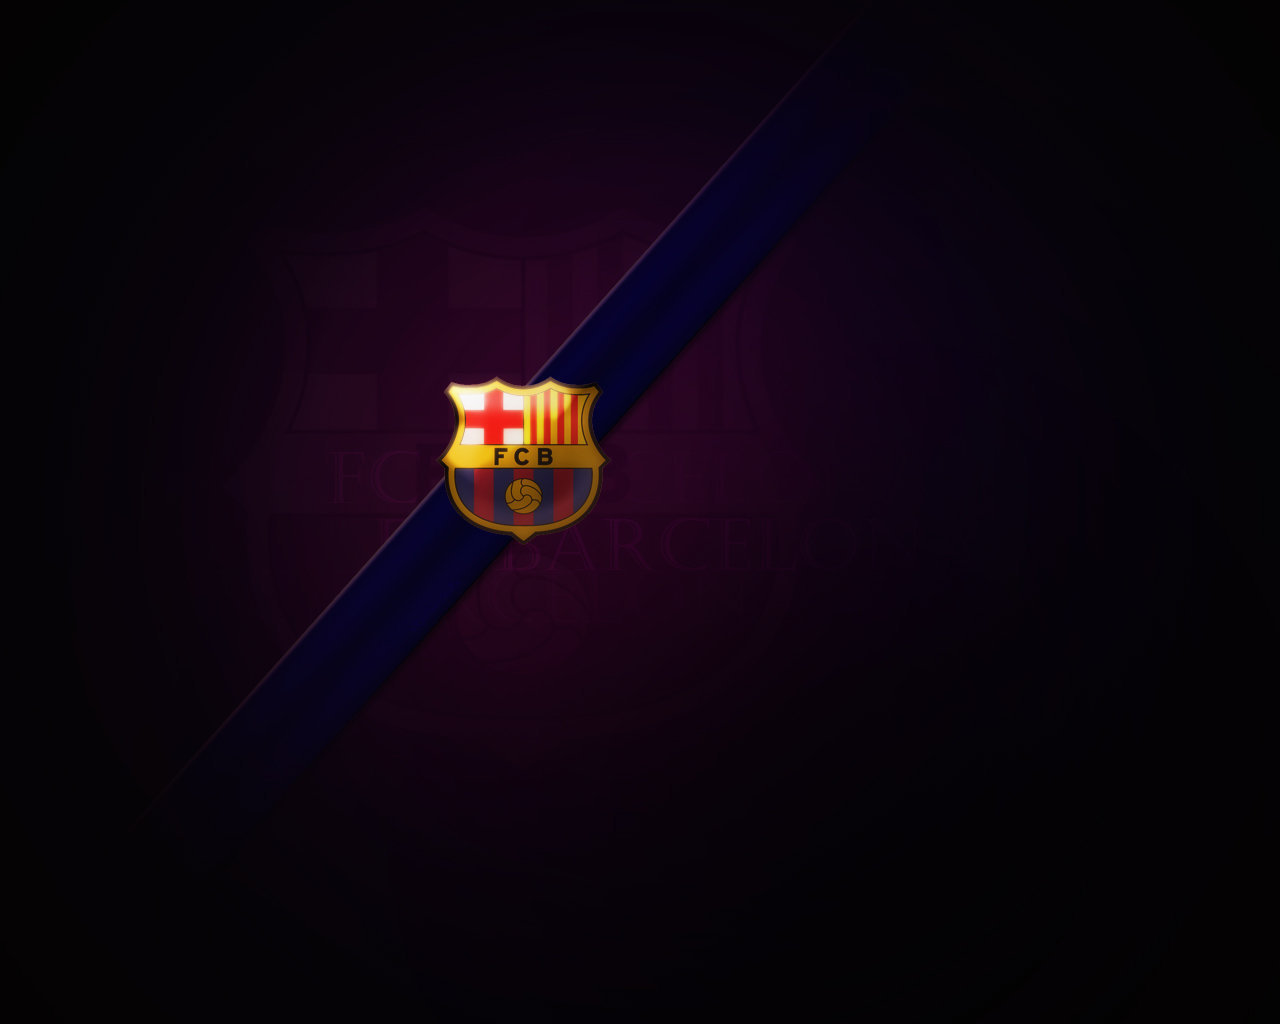 Liverpool Fc Logo 3d: Wallpapers Hd For Mac: Barcelona Football Club Logo